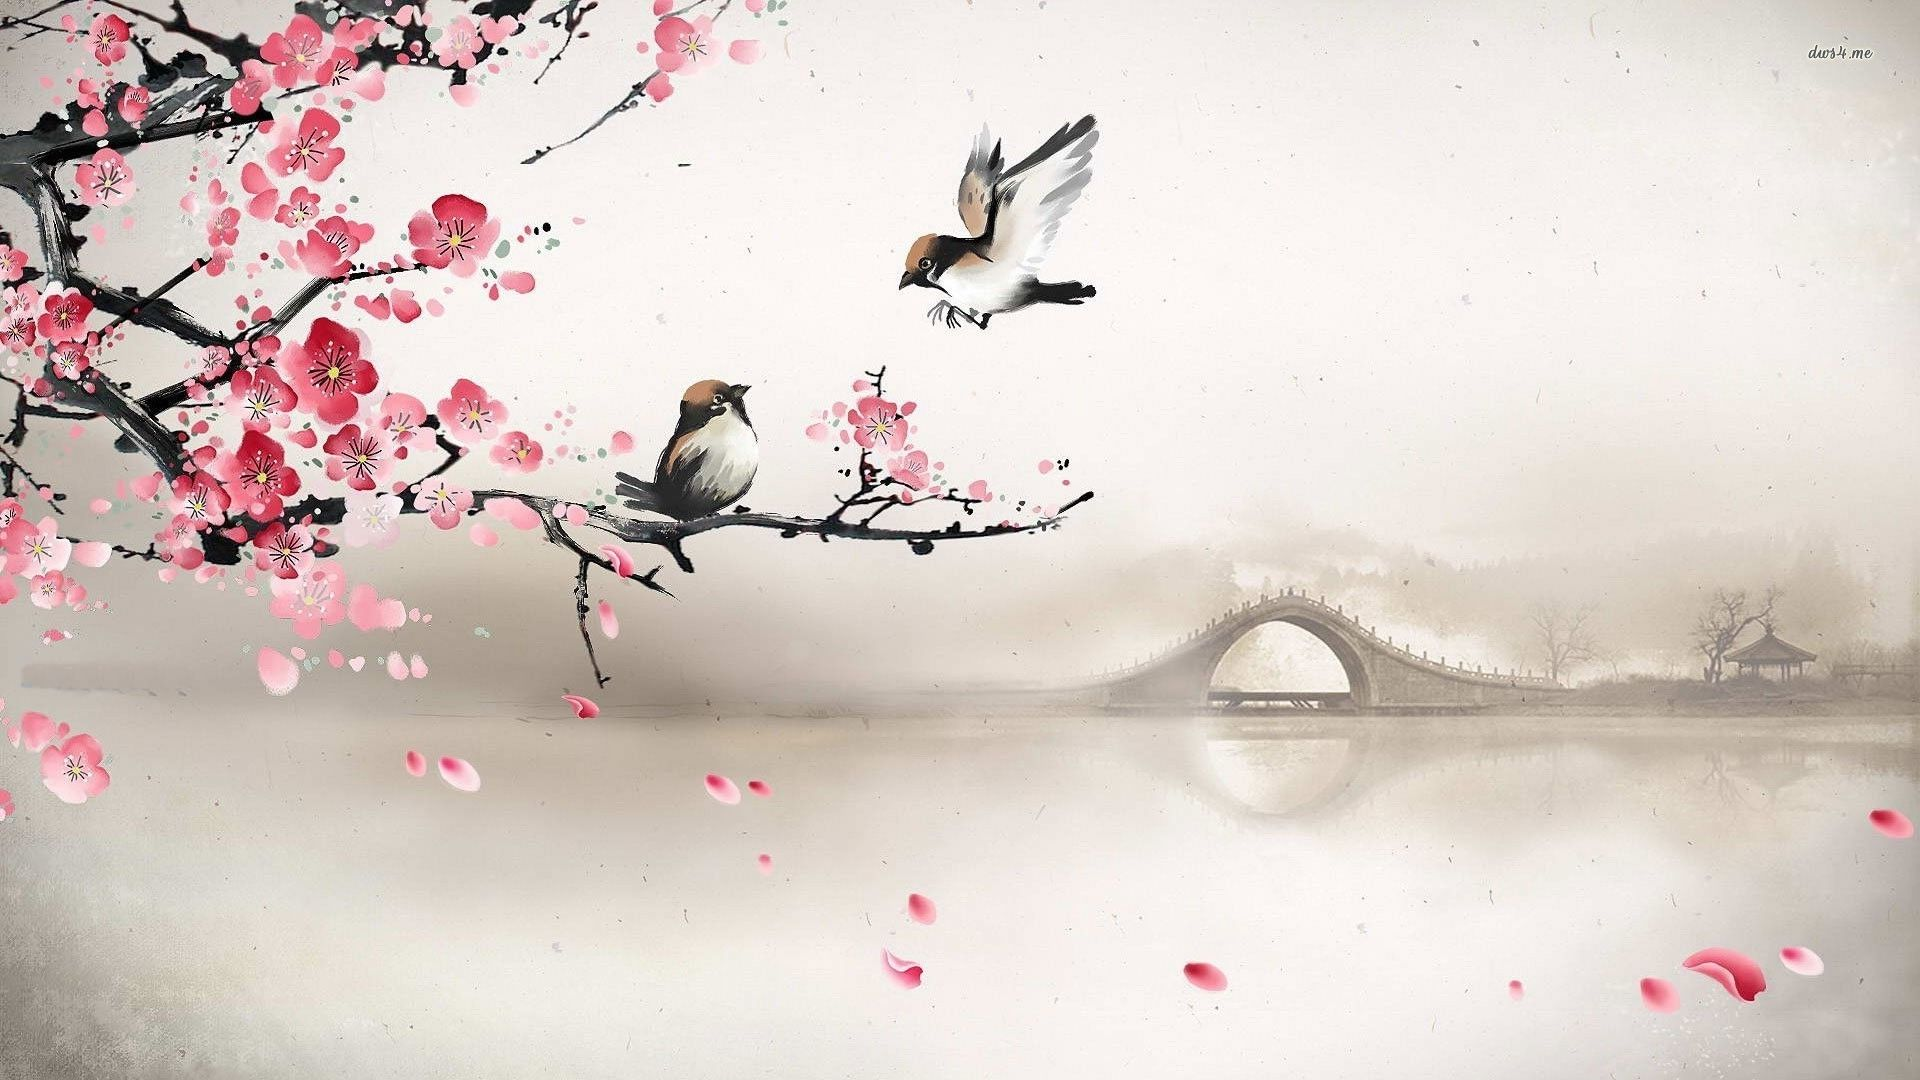 16007-sparrows-on-the-cherry-tree-1920x1080-artistic-wallpaper.jpg ...